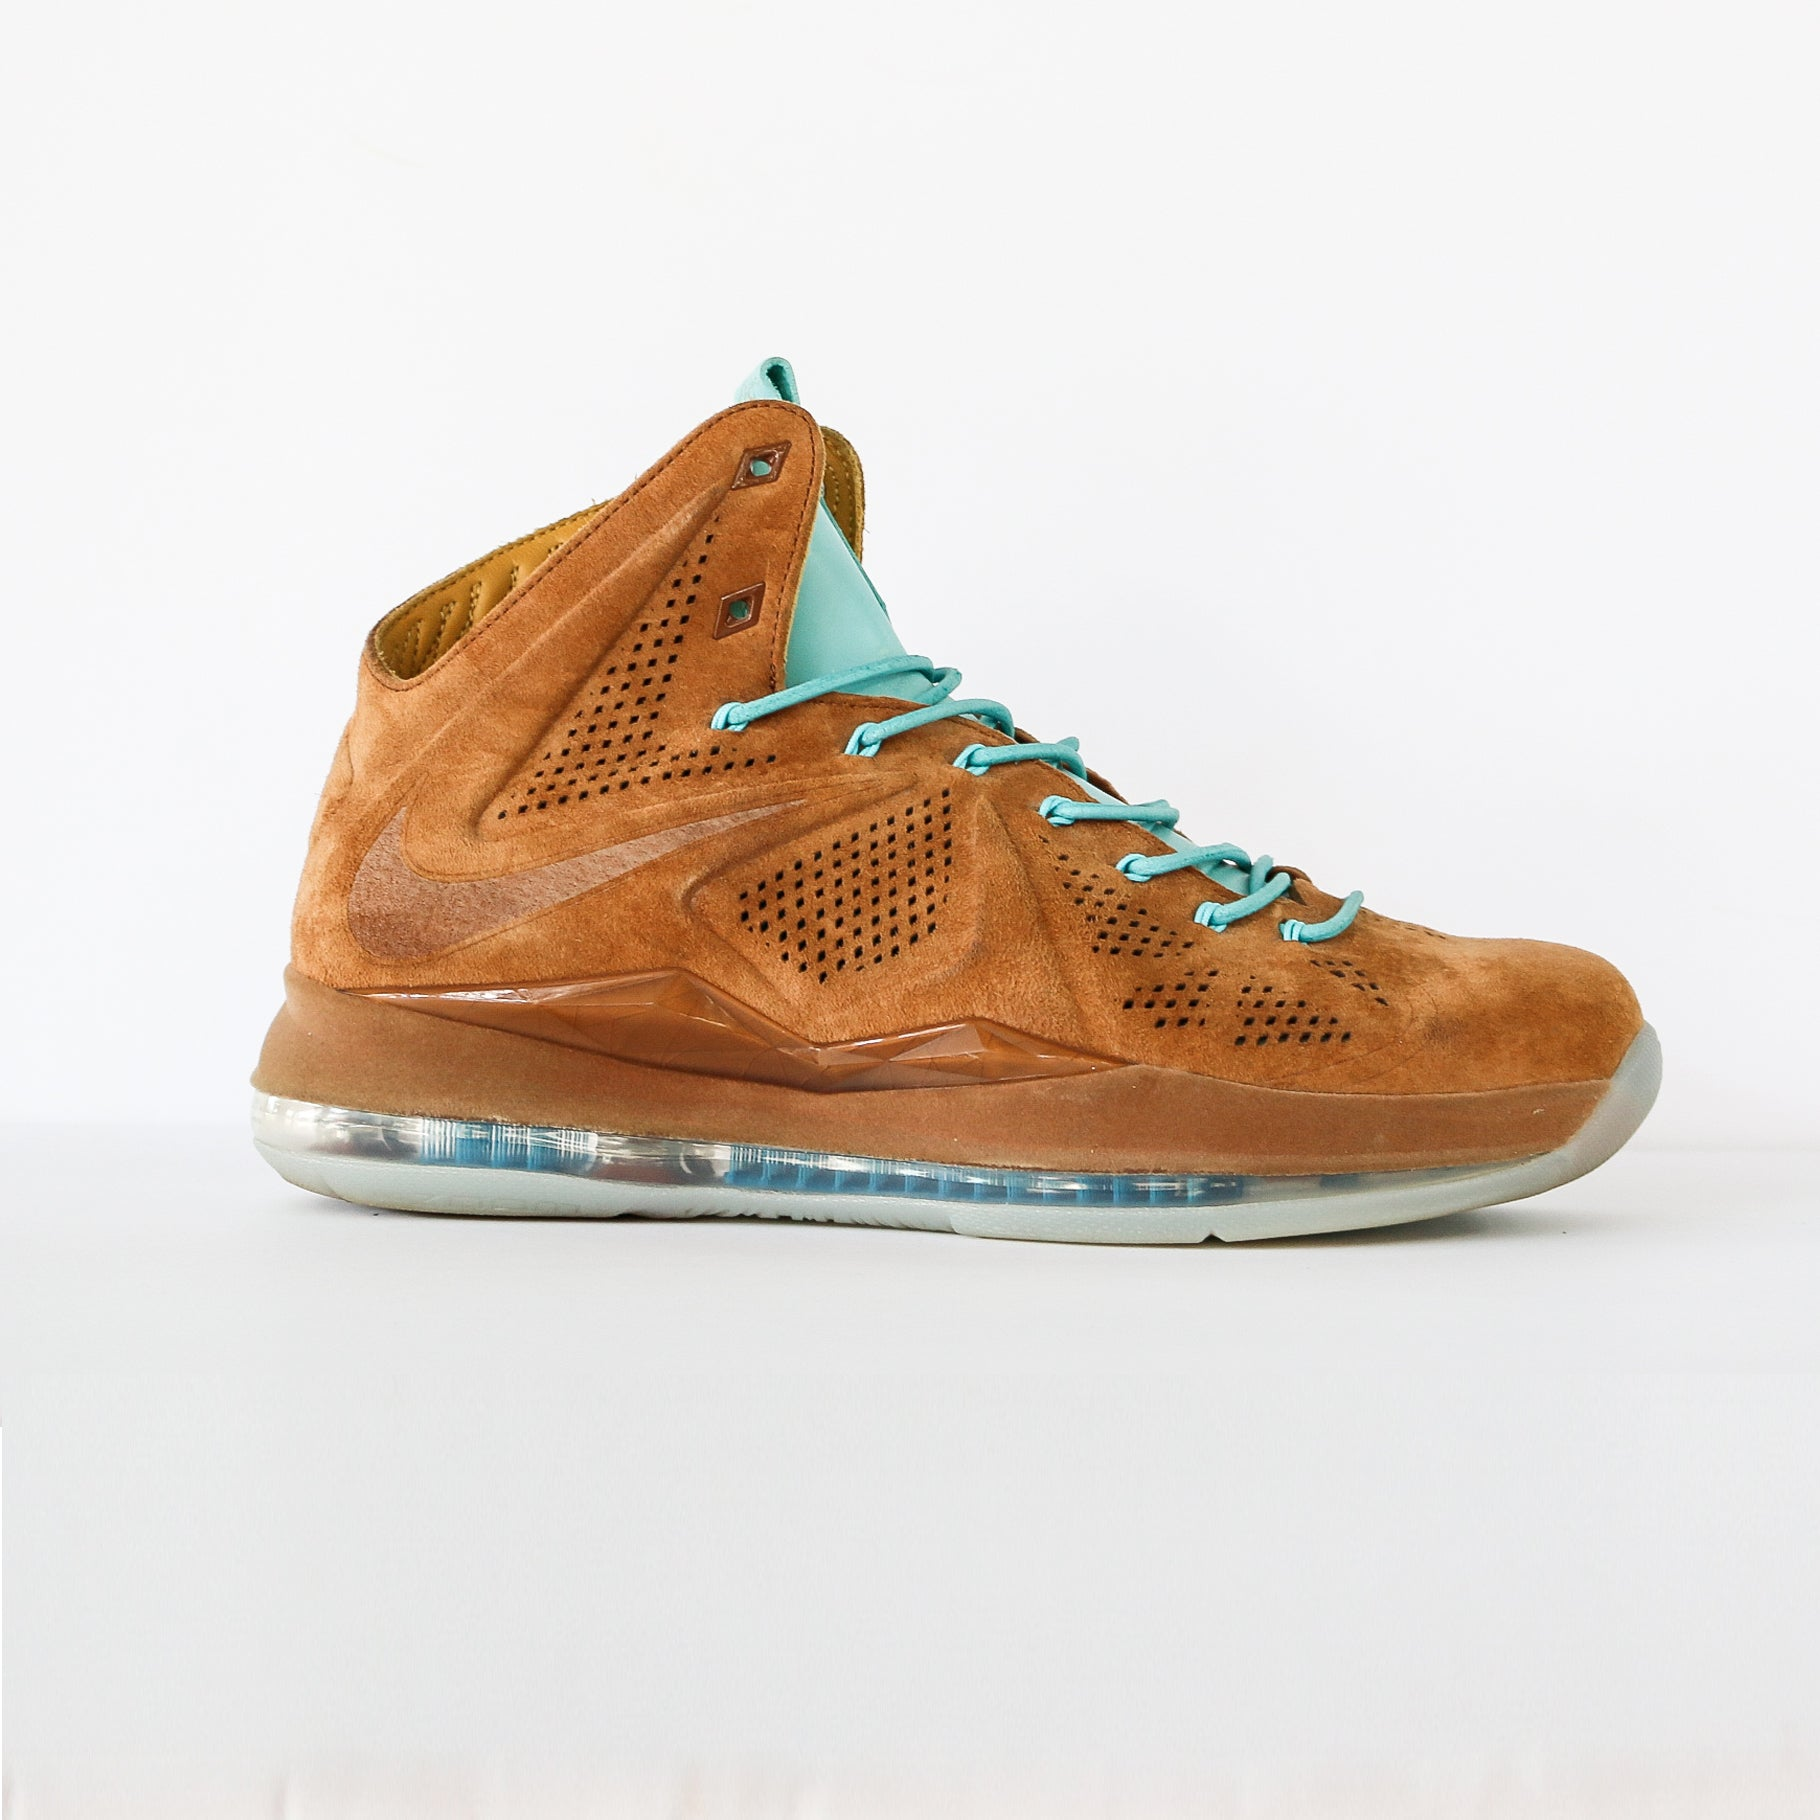 new product f6399 0a178 LeBron 10 EXT QS